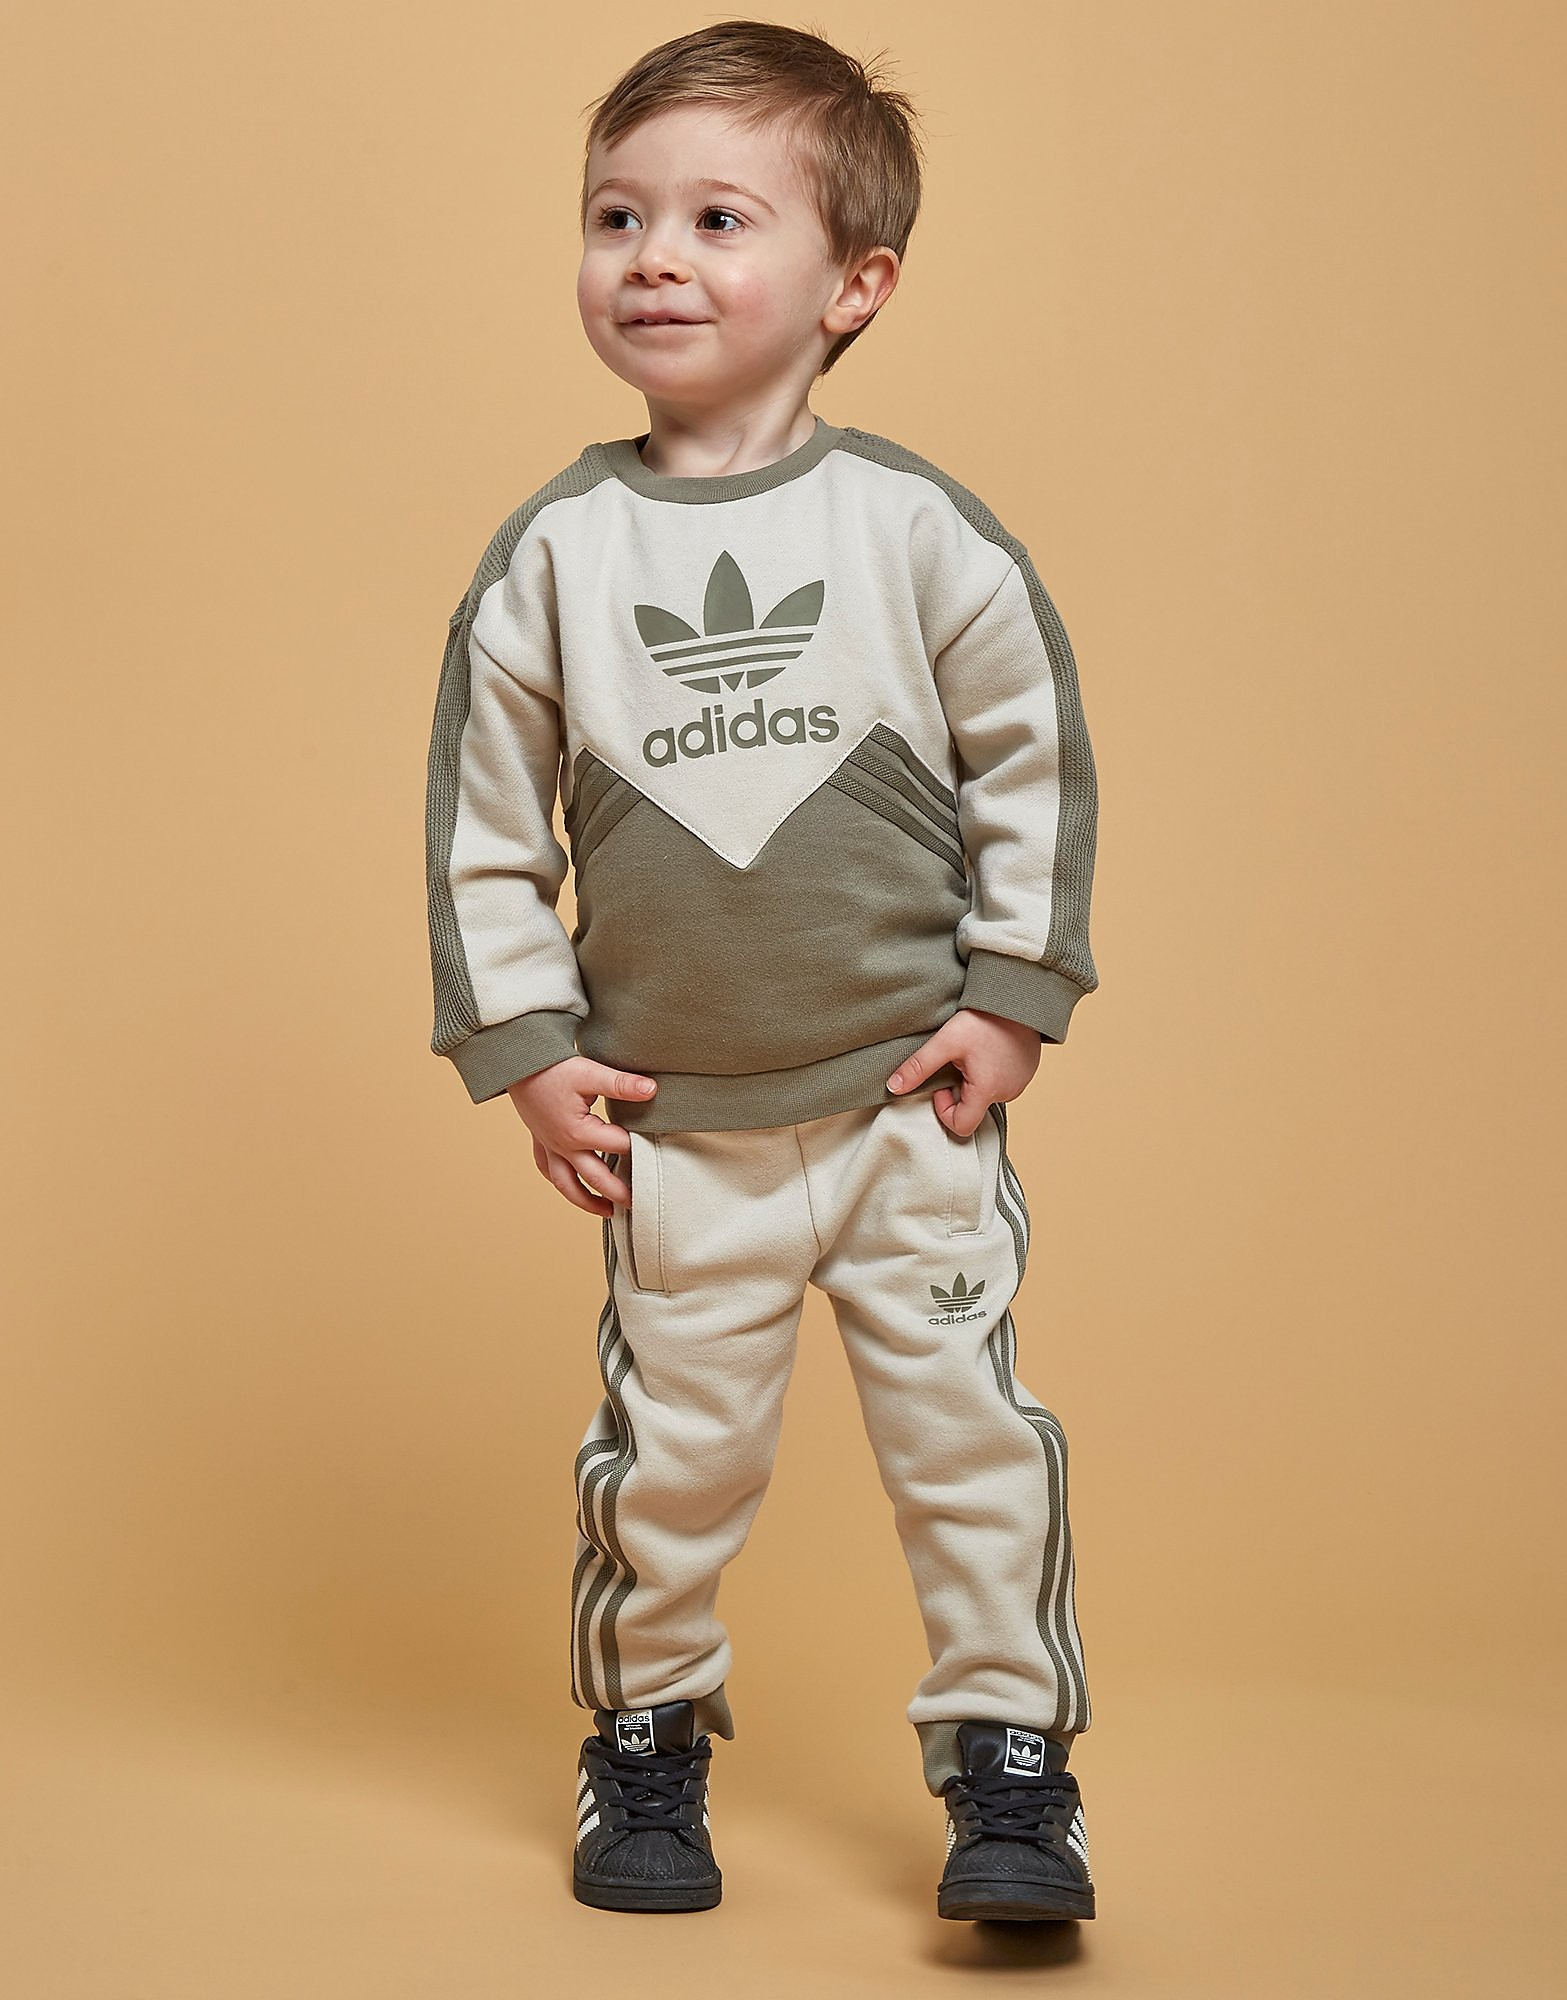 adidas Originals MOA Crew Suit Infant